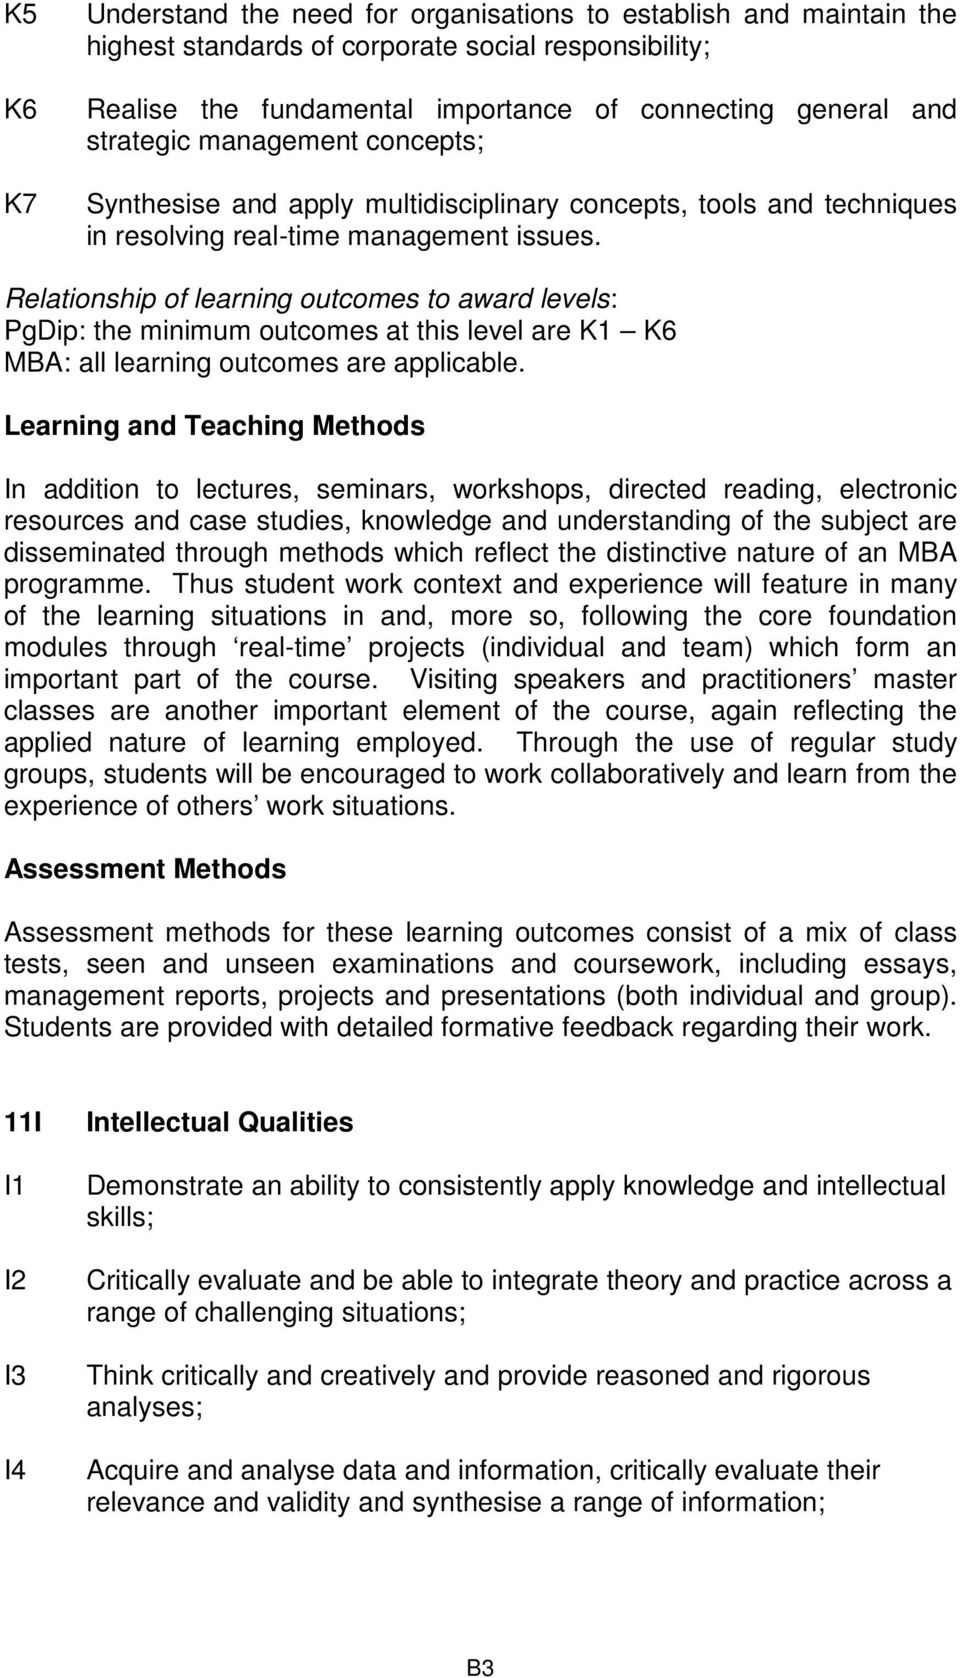 Relationship of learning outcomes to award levels: PgDip: the minimum outcomes at this level are K1 K6 MBA: all learning outcomes are applicable.